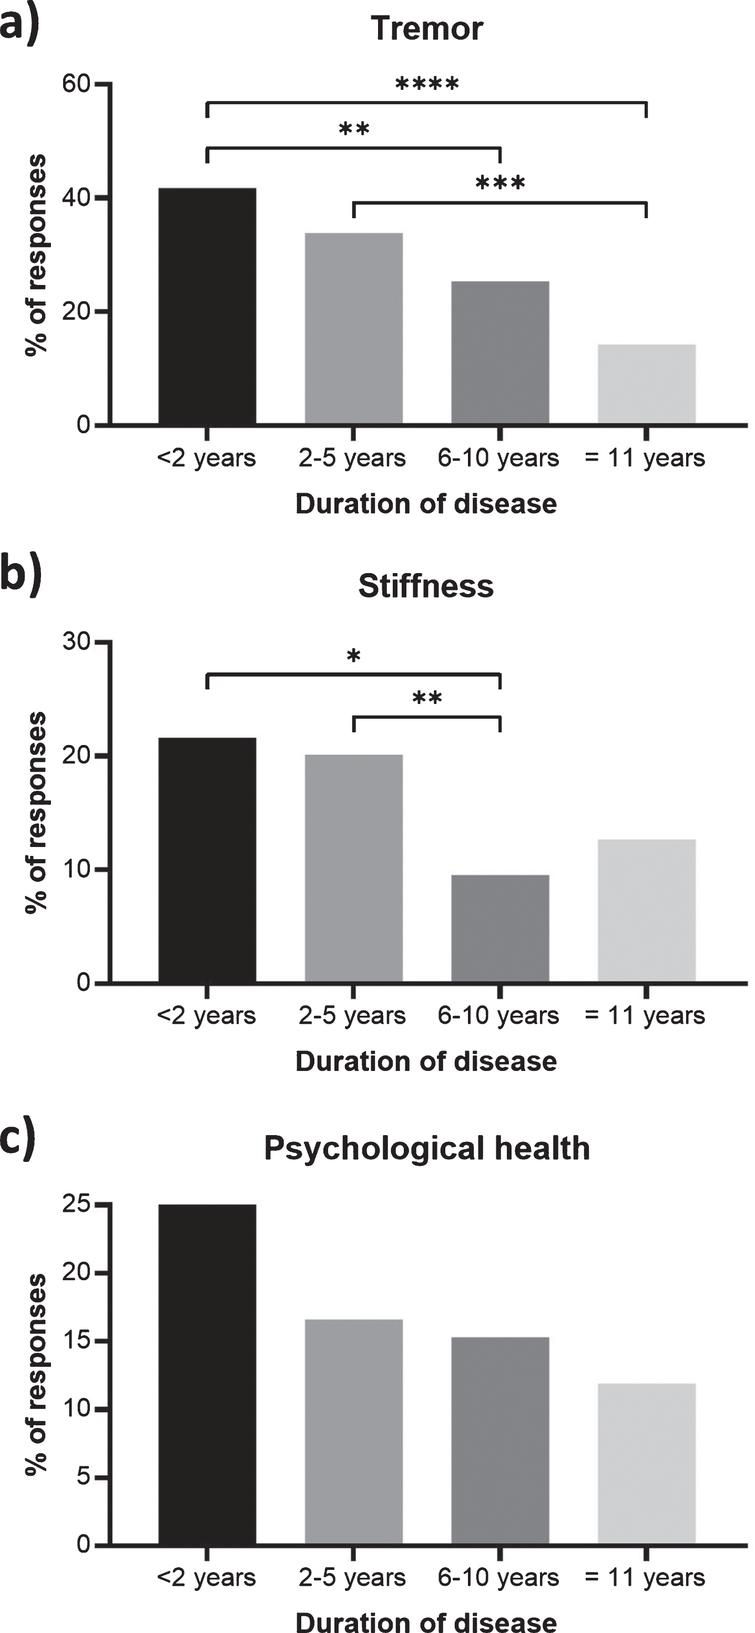 Symptoms of Parkinson's disease that were reported as a priority for improvement less frequently with disease duration. Percentages show the respondents with a duration of<2 years (n=134), 2–5 years (n=313), 6–10 years (n=209) and 11+years (n=126) reporting (a) tremor, (b) stiffness, and (c) psychological health within their 3 priority areas. Statistical significant between duration groups (Dunn's multiple comparisons tests) are presented as asterisks: *p<0.05; **p<0.01; ***p<0.001; ****p<0.0001. Responses from bereaved partners, family members or friends have been excluded as no duration data is available.